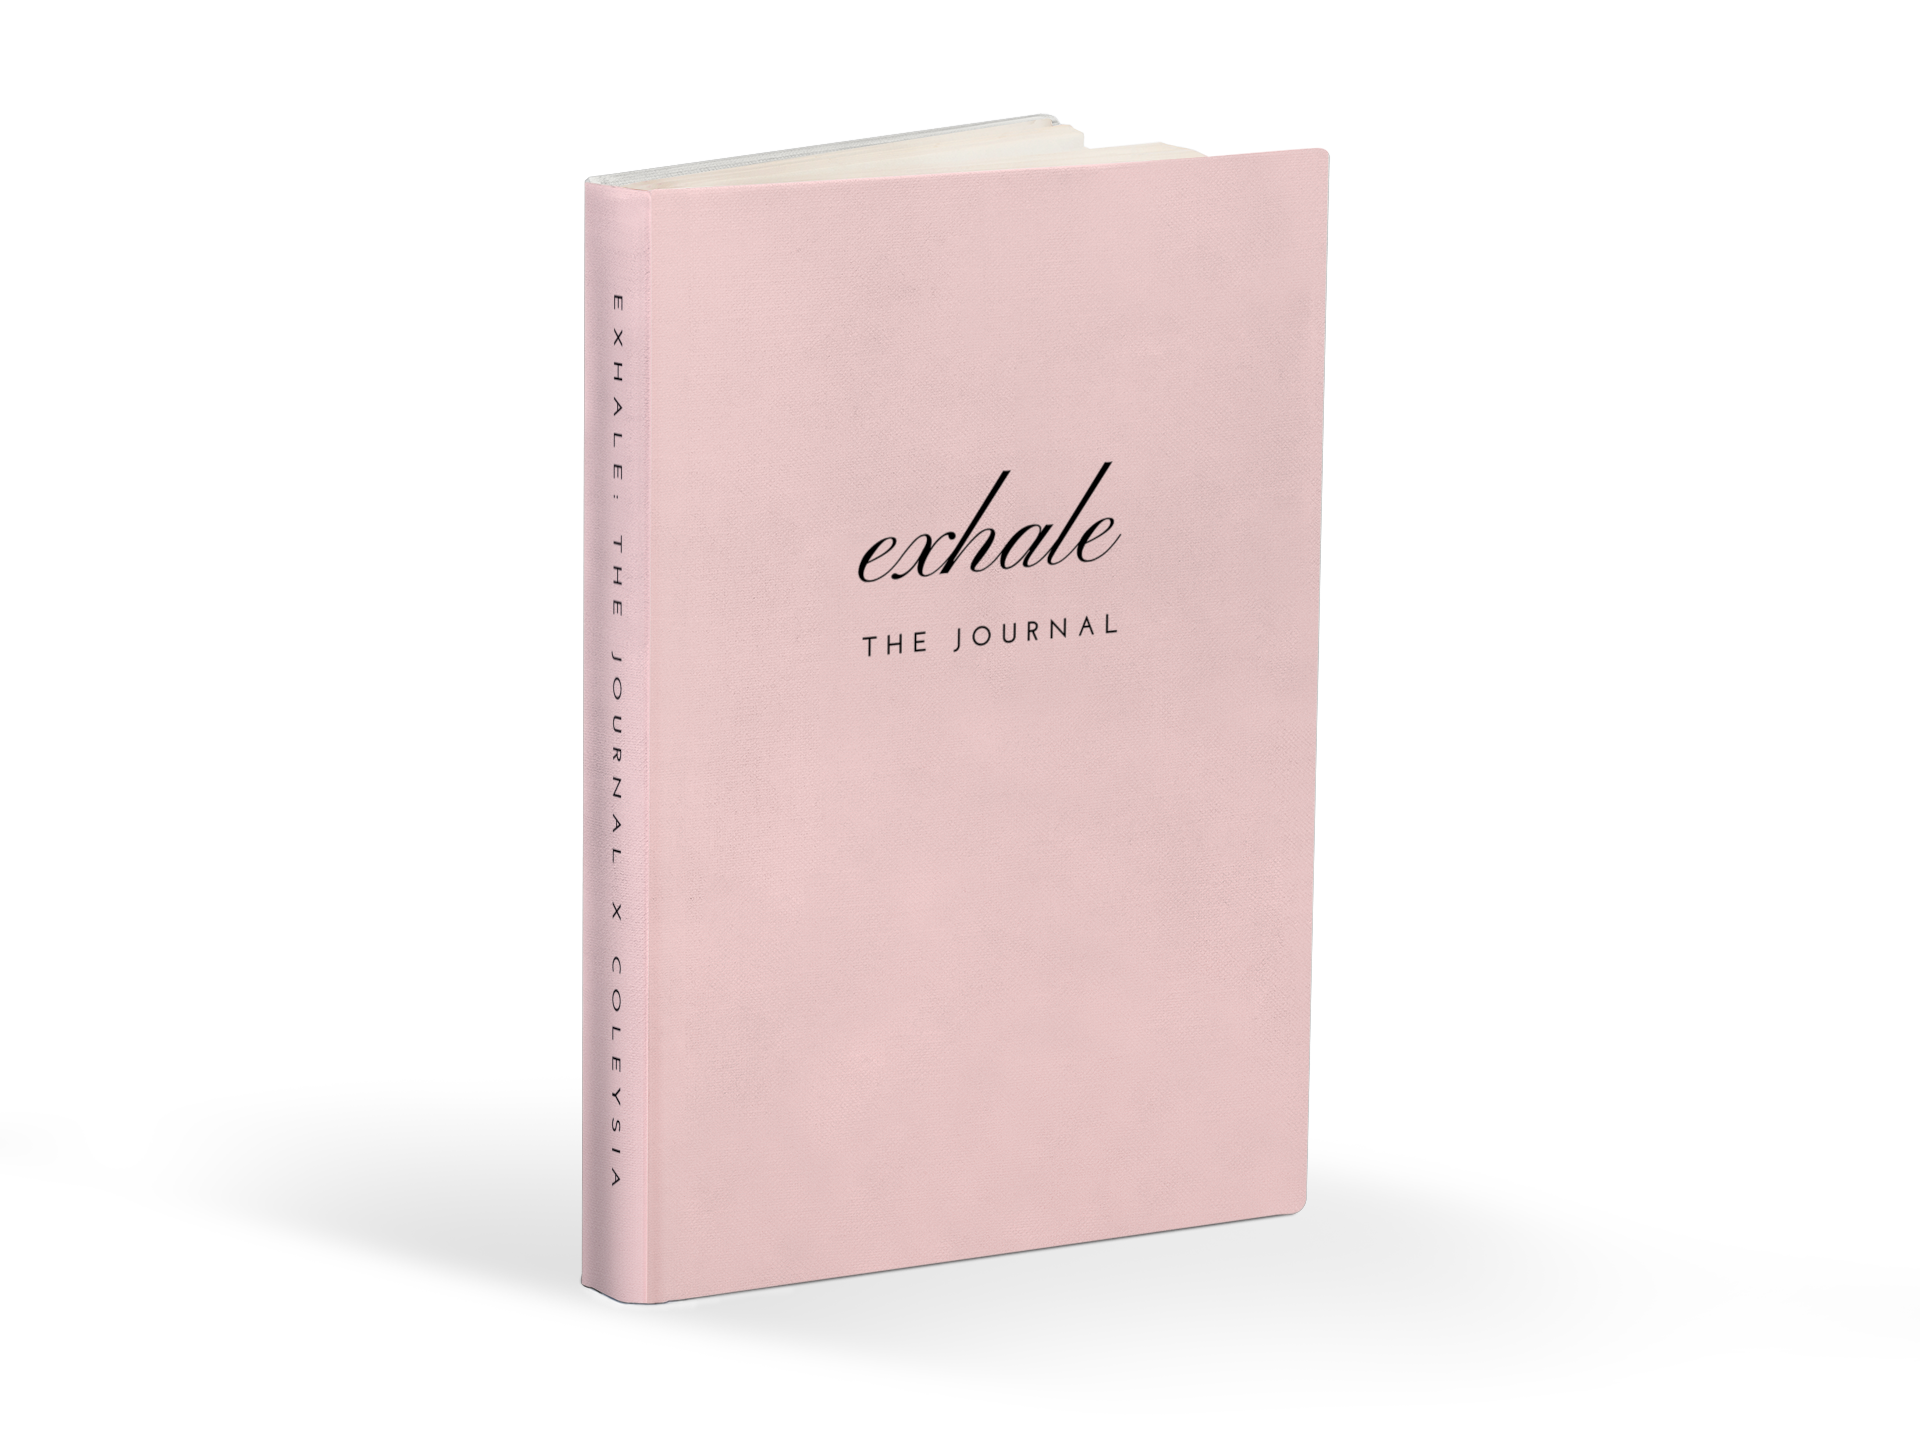 Exhale: The Journal in Blush Pink